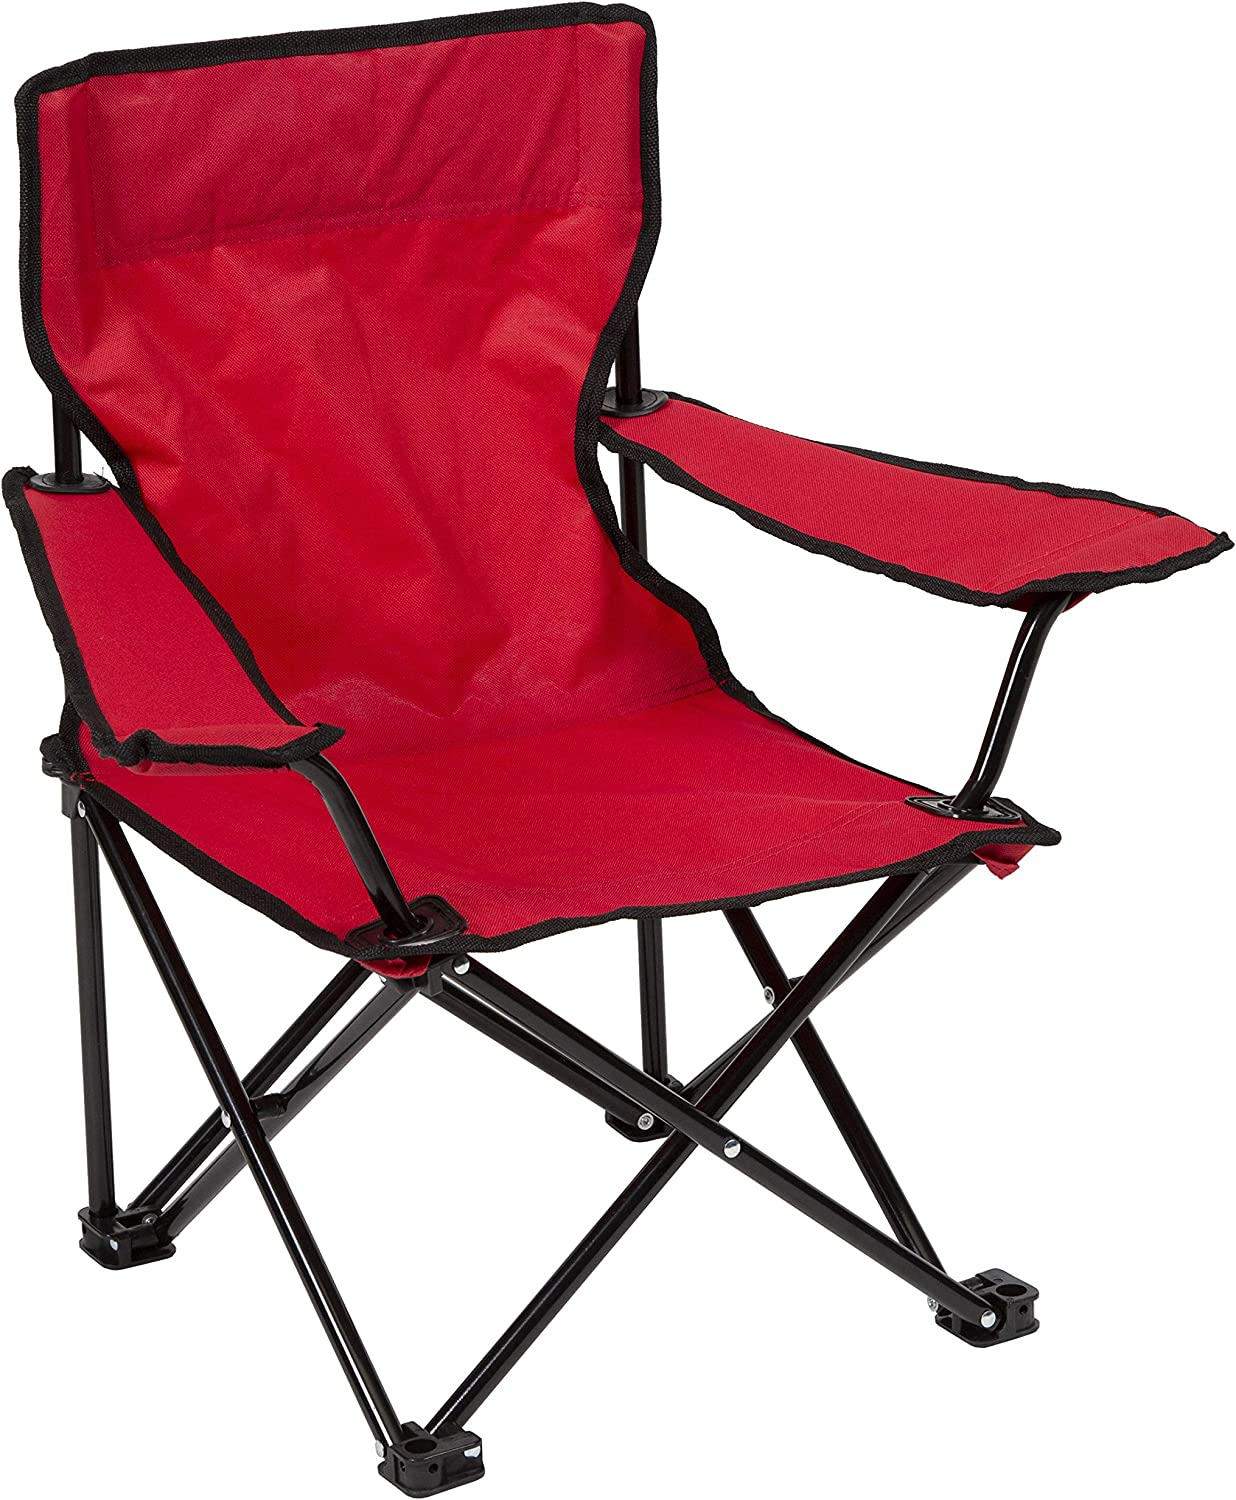 Pacific Play Tents Ruby Red Kids Super Folding Chair